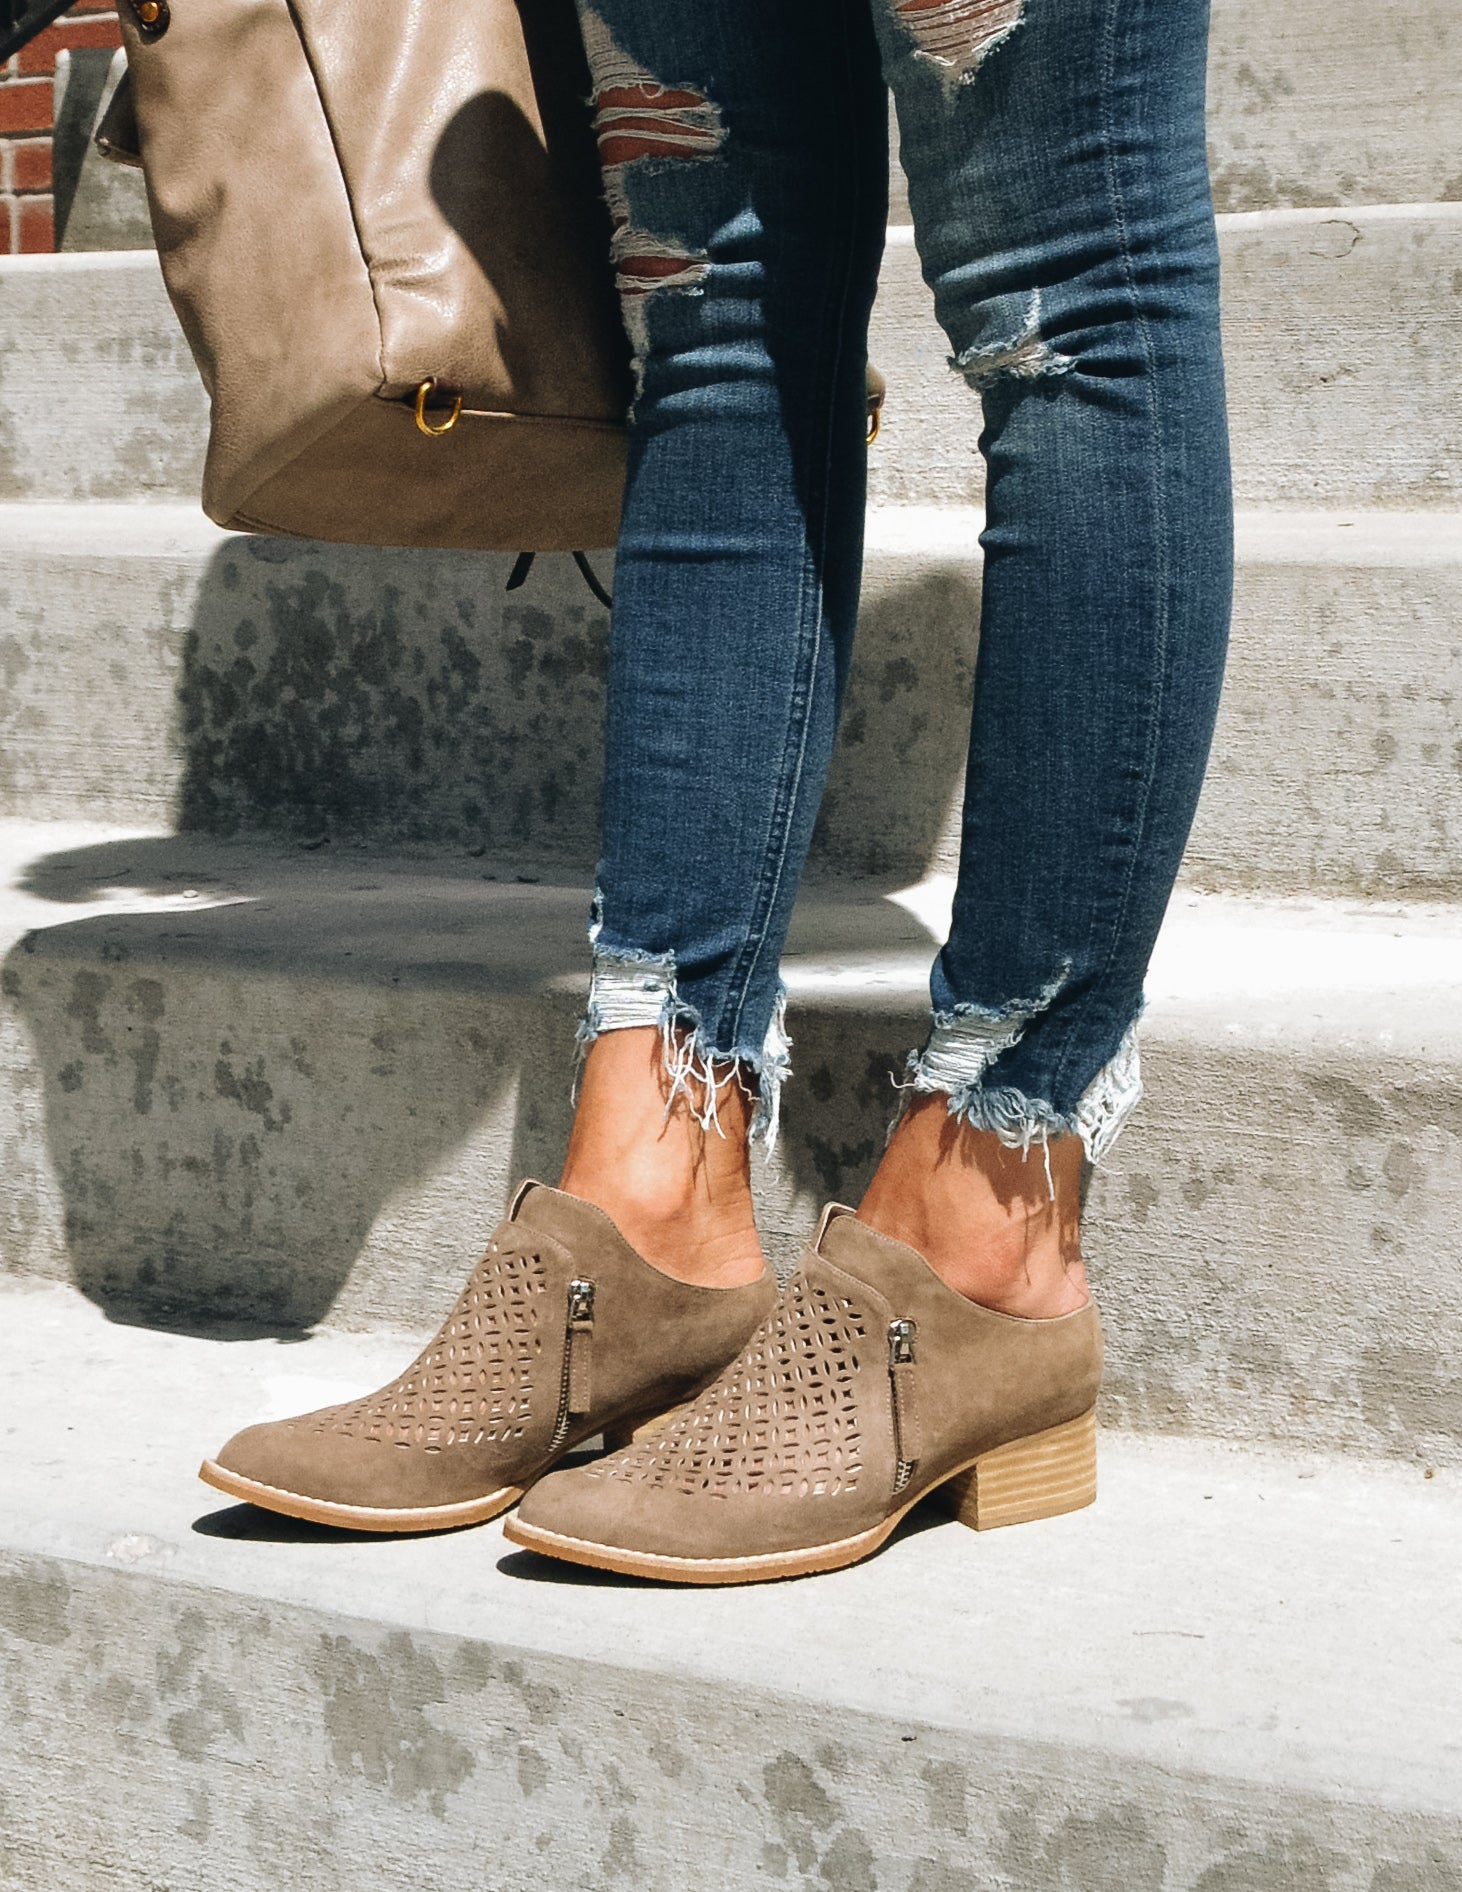 Woman standing on concrete step showing knee-down details of Taniss booties - Elle Bleu Shoe Boutique